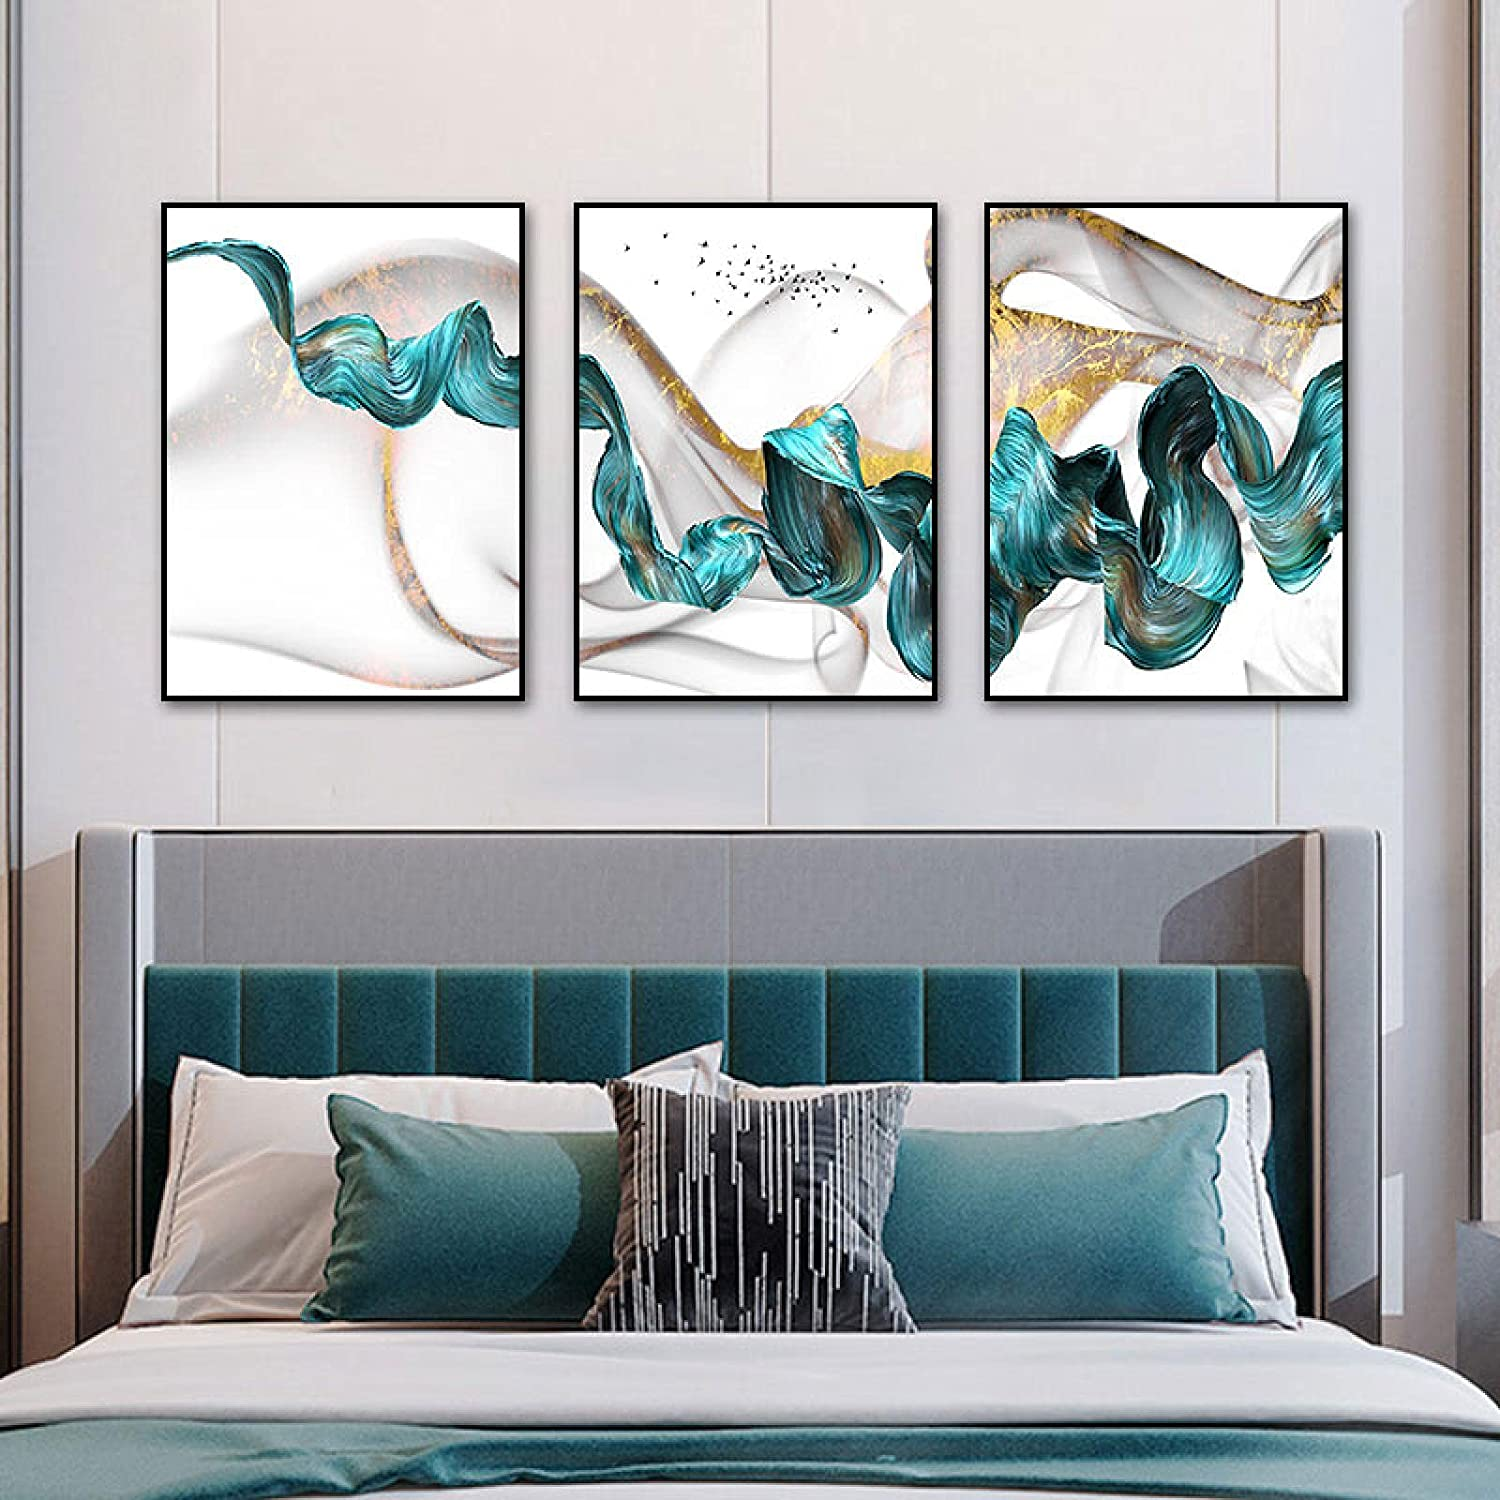 Nordic Blue Mountain Painting Canvas Posters Abstract 70% OFF Outlet a Art Manufacturer OFFicial shop Wall